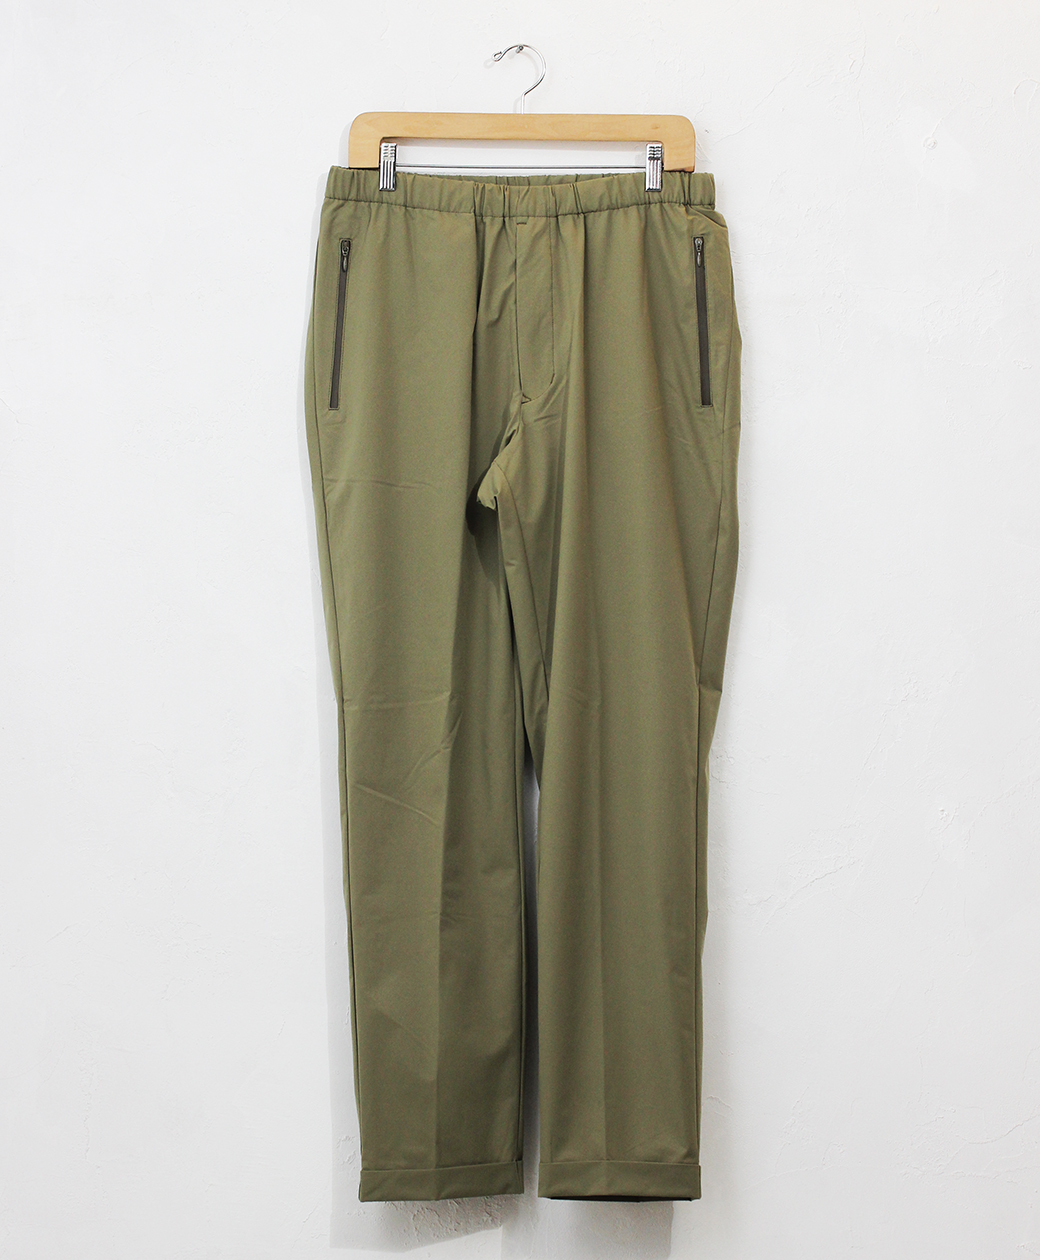 DESCENTE PACKABLE PANTS(SKHK)